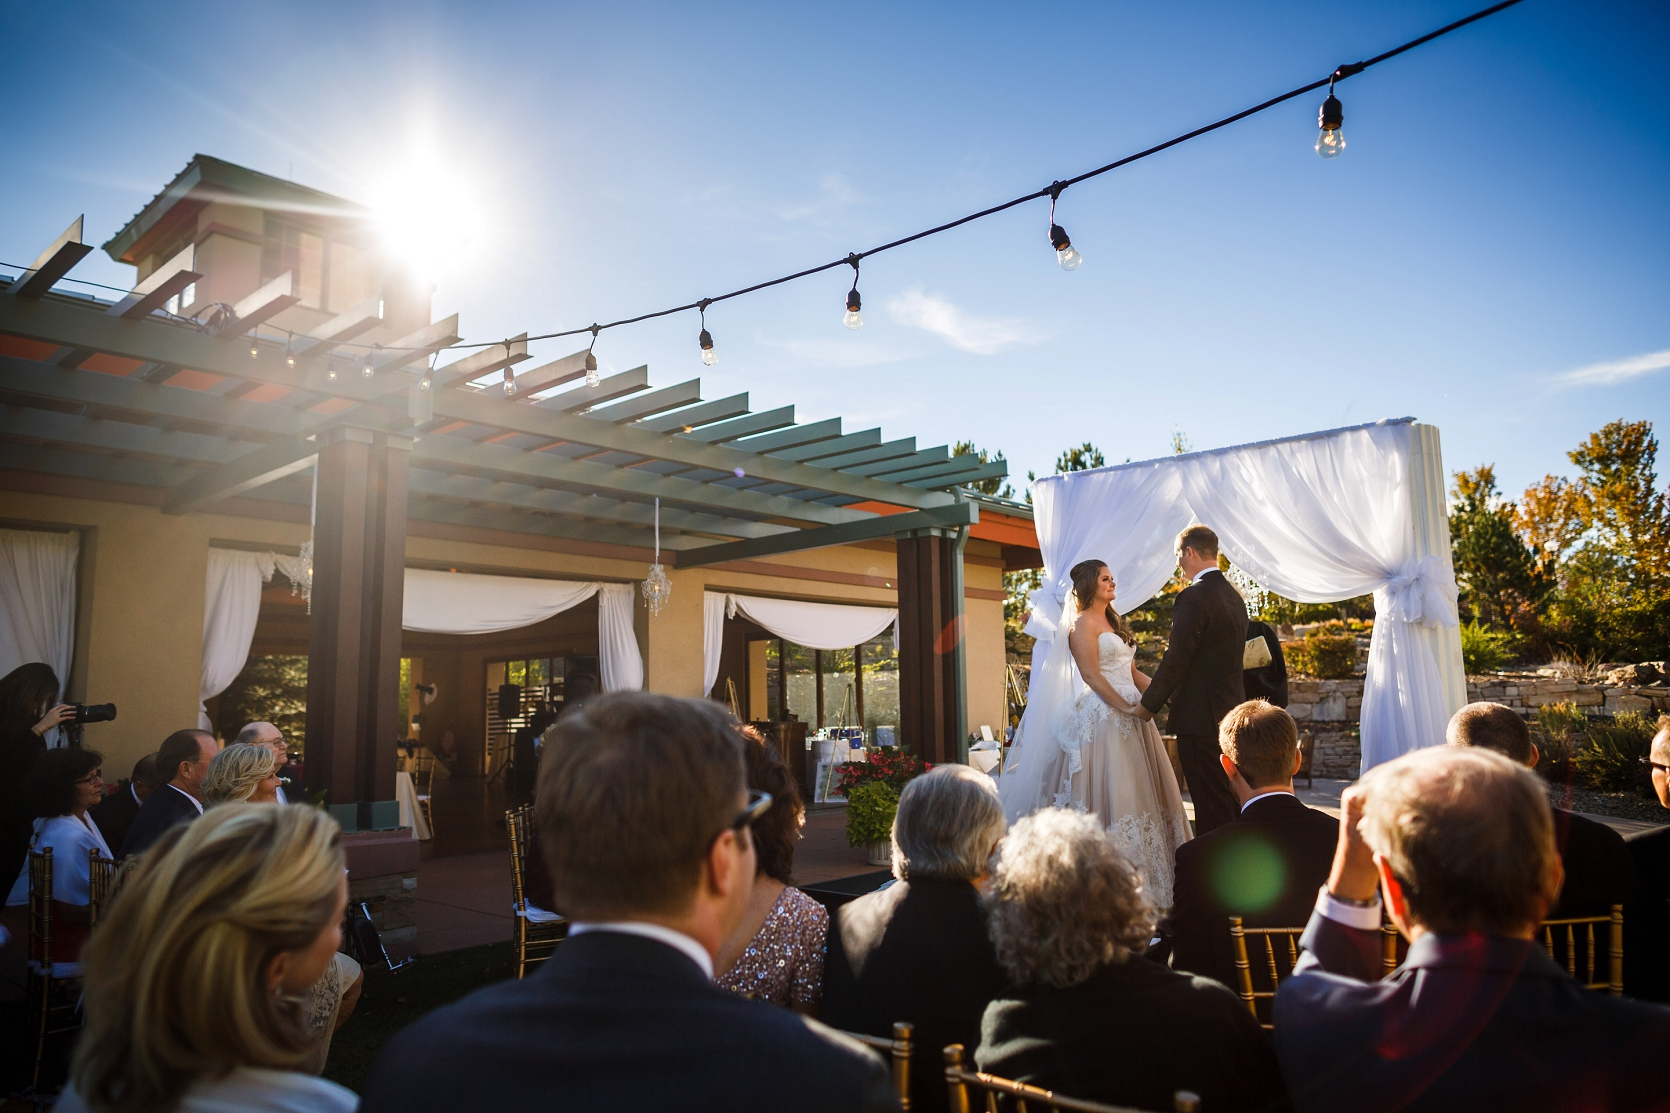 Omni_Interlocken_Hotel_Wedding_0019